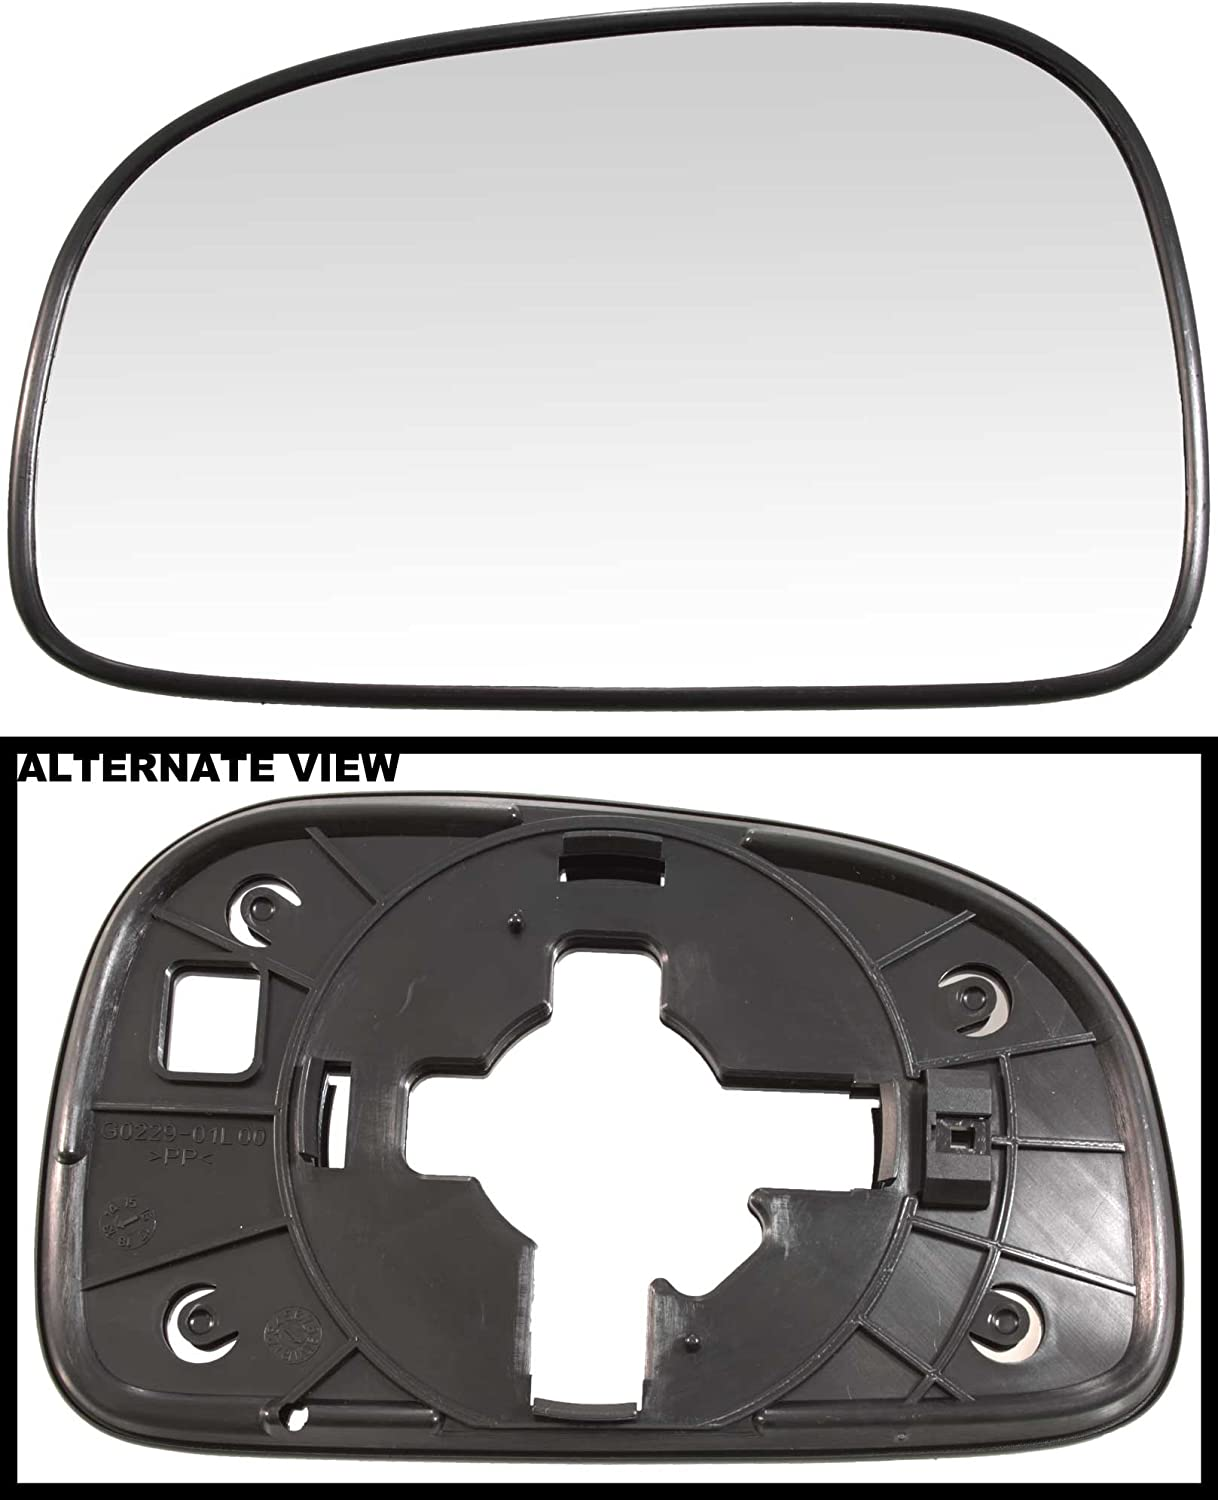 2005-2006 Hyundai Sante Fe Models Without Heat Driver-Side Replaces 8761126000 APDTY 67765 Replacement Left Side View Mirror Glass Fits